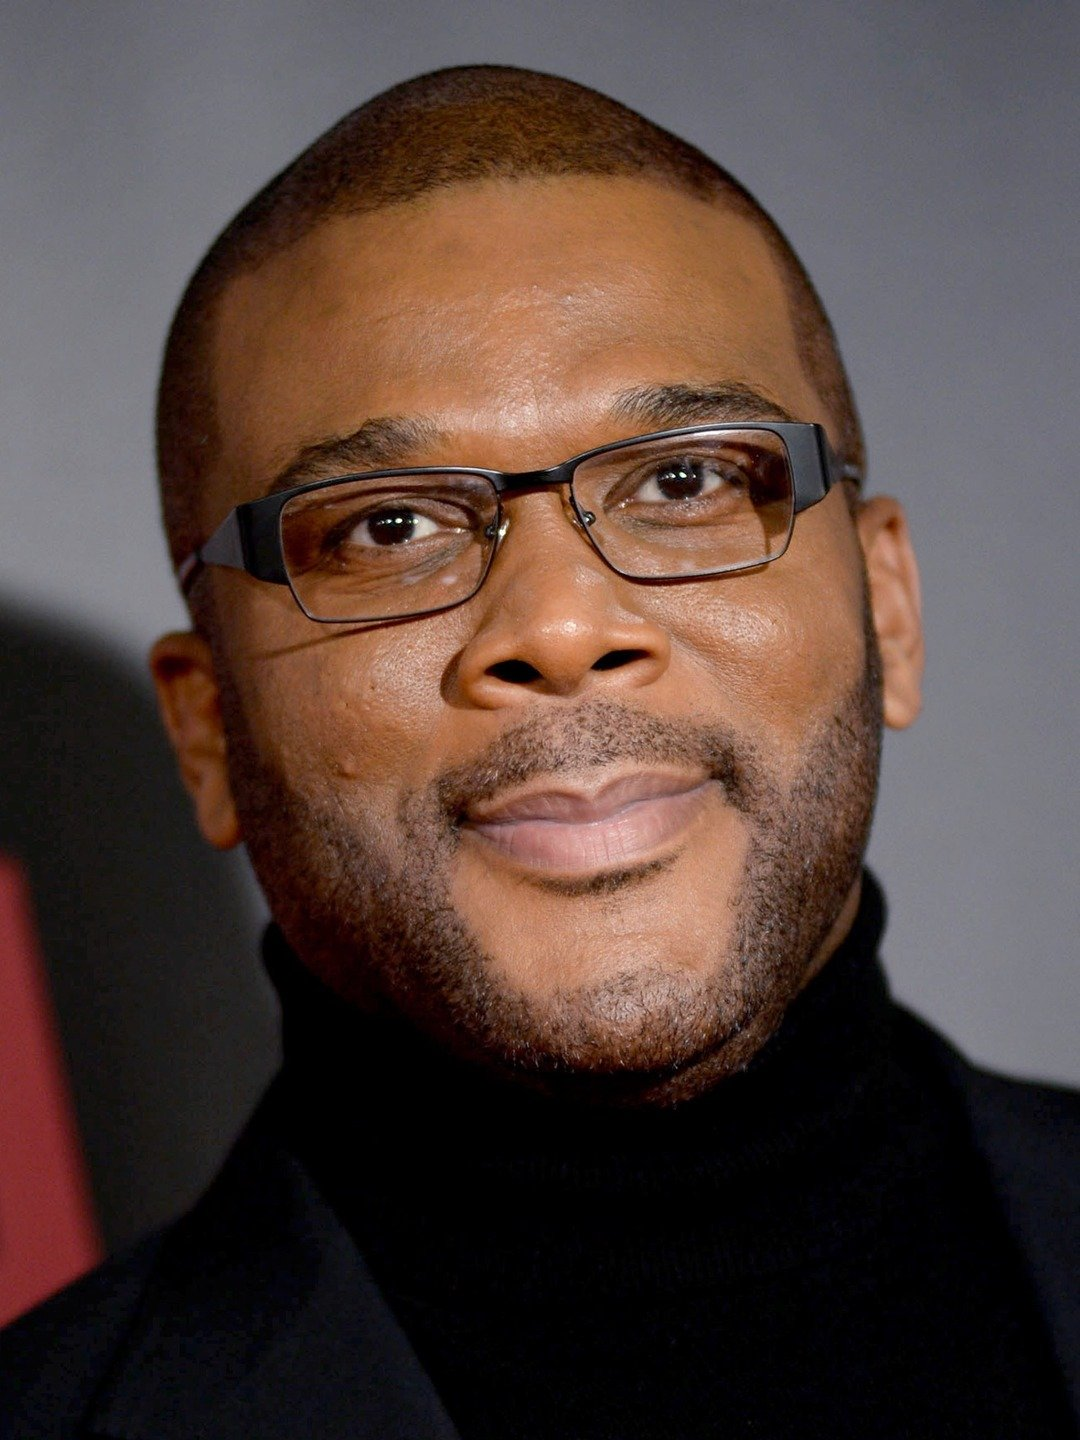 Tyler Perry American Actor, Director, Producer, Writer, Comedian